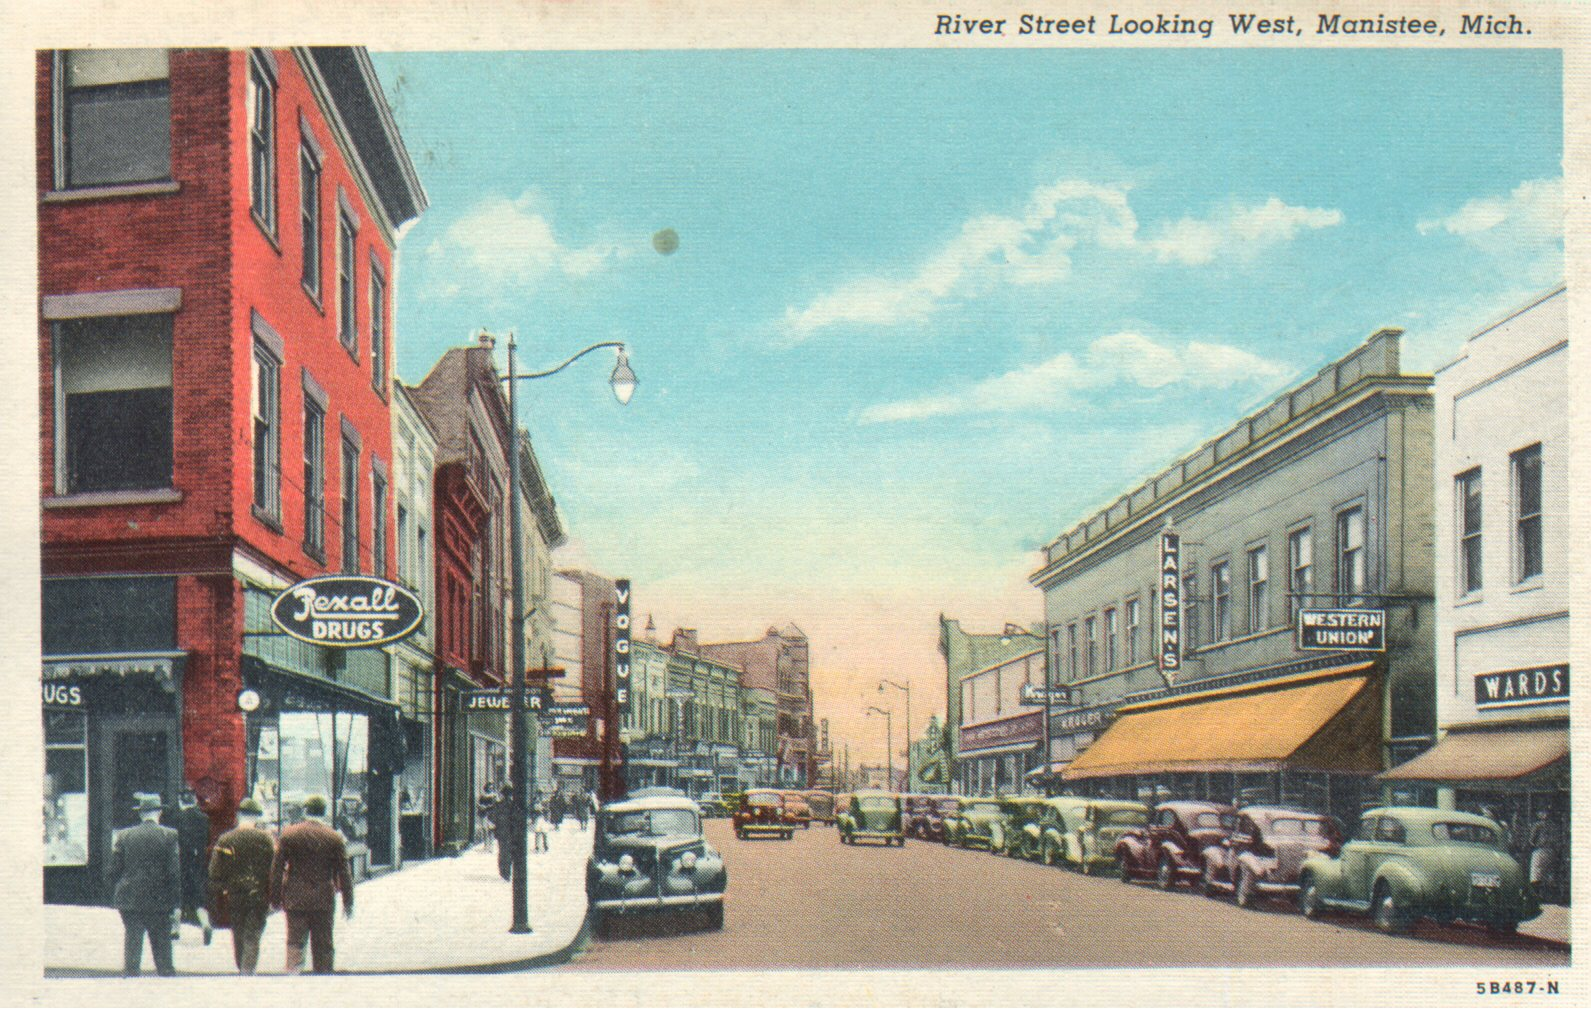 Colored Historical postcard of River Street Looking West in downtown Manistee cars are parked along the street and pedestrians are walking down the sidewalk  signs advertising Rexall Drugs, Larsen's, Kroger and Vogue are highlighted